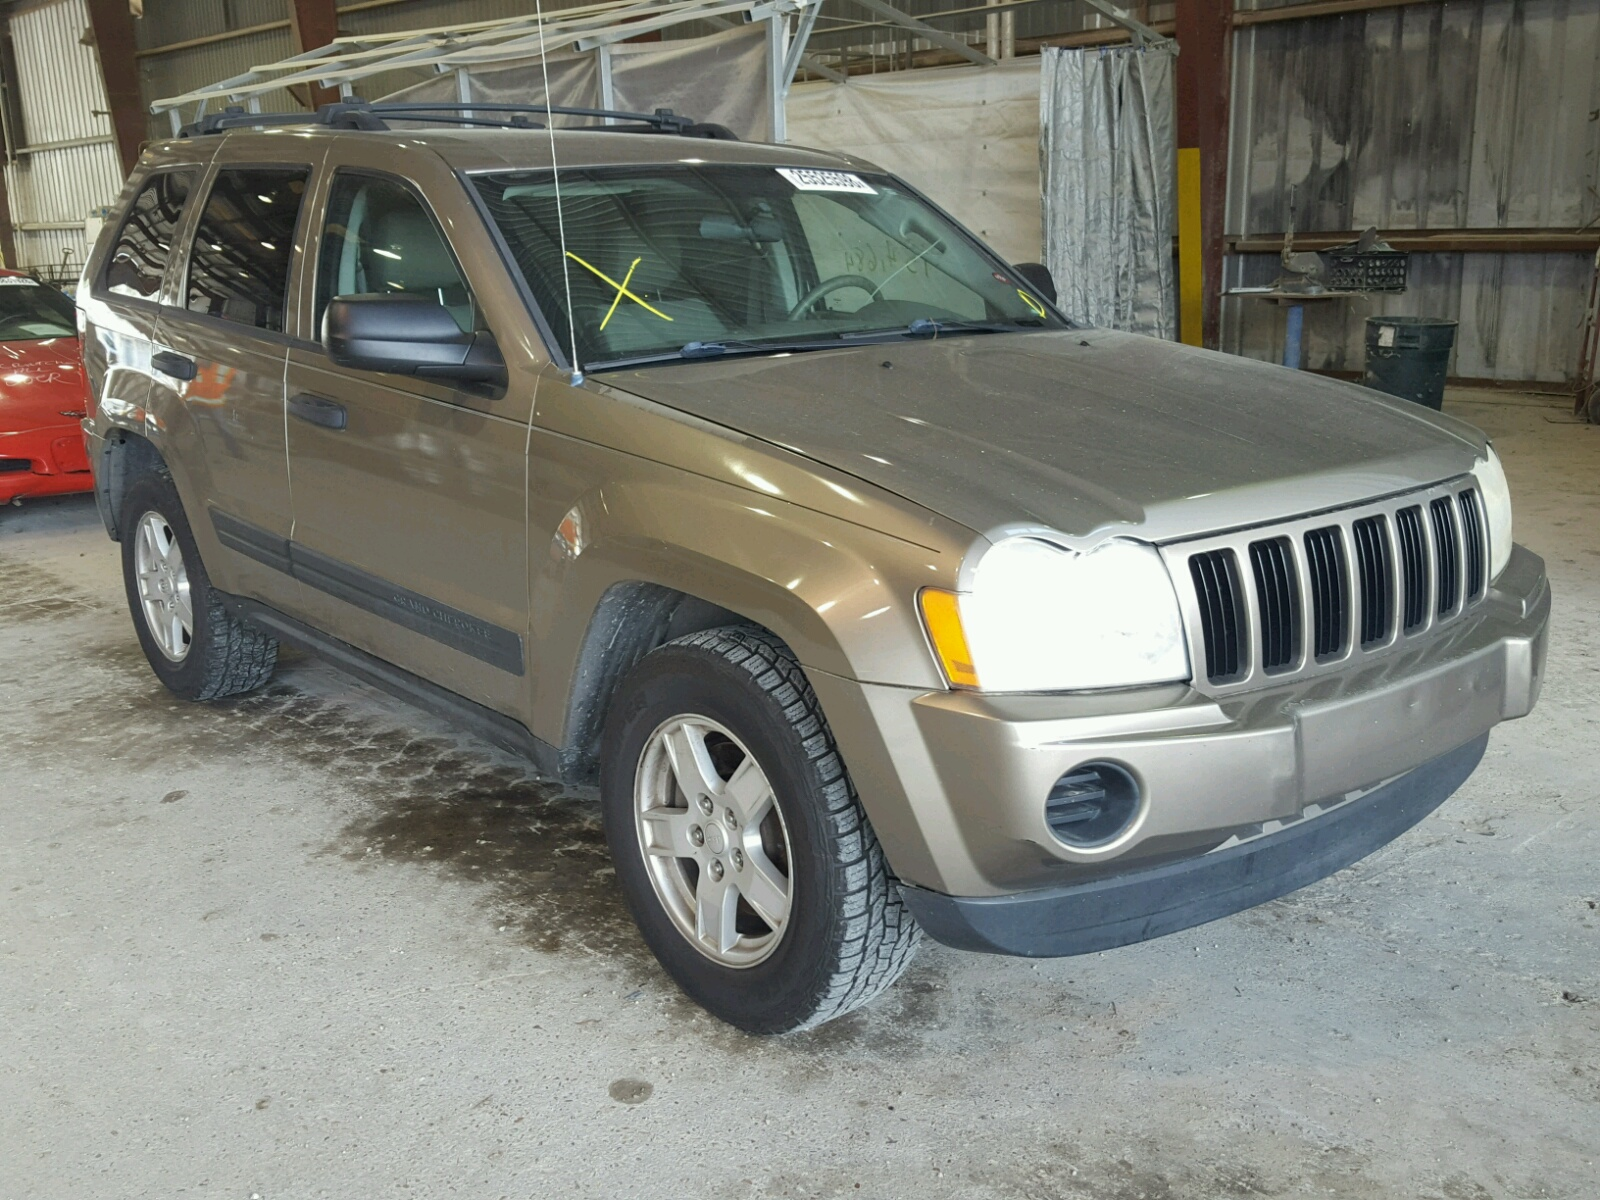 baton rouge gray sale view on cert jeep title la of online copart salvage en commander left lot auto auctions in carfinder